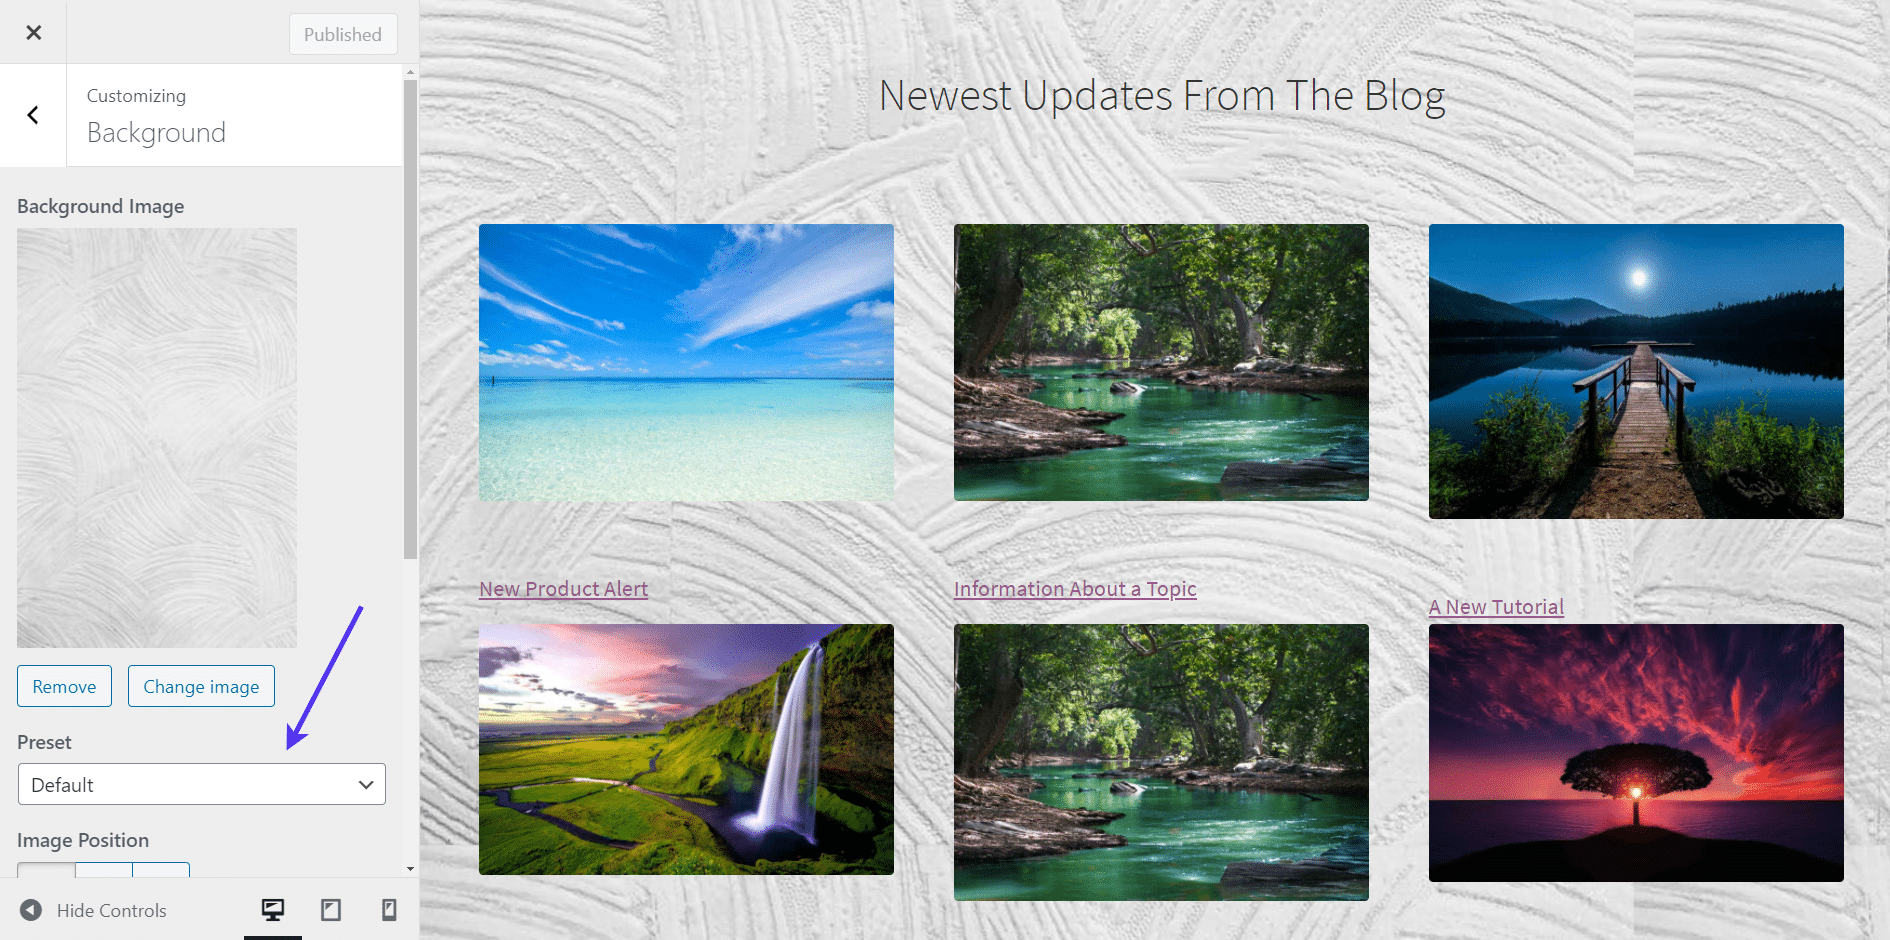 The 'Preset' option for WordPress background images